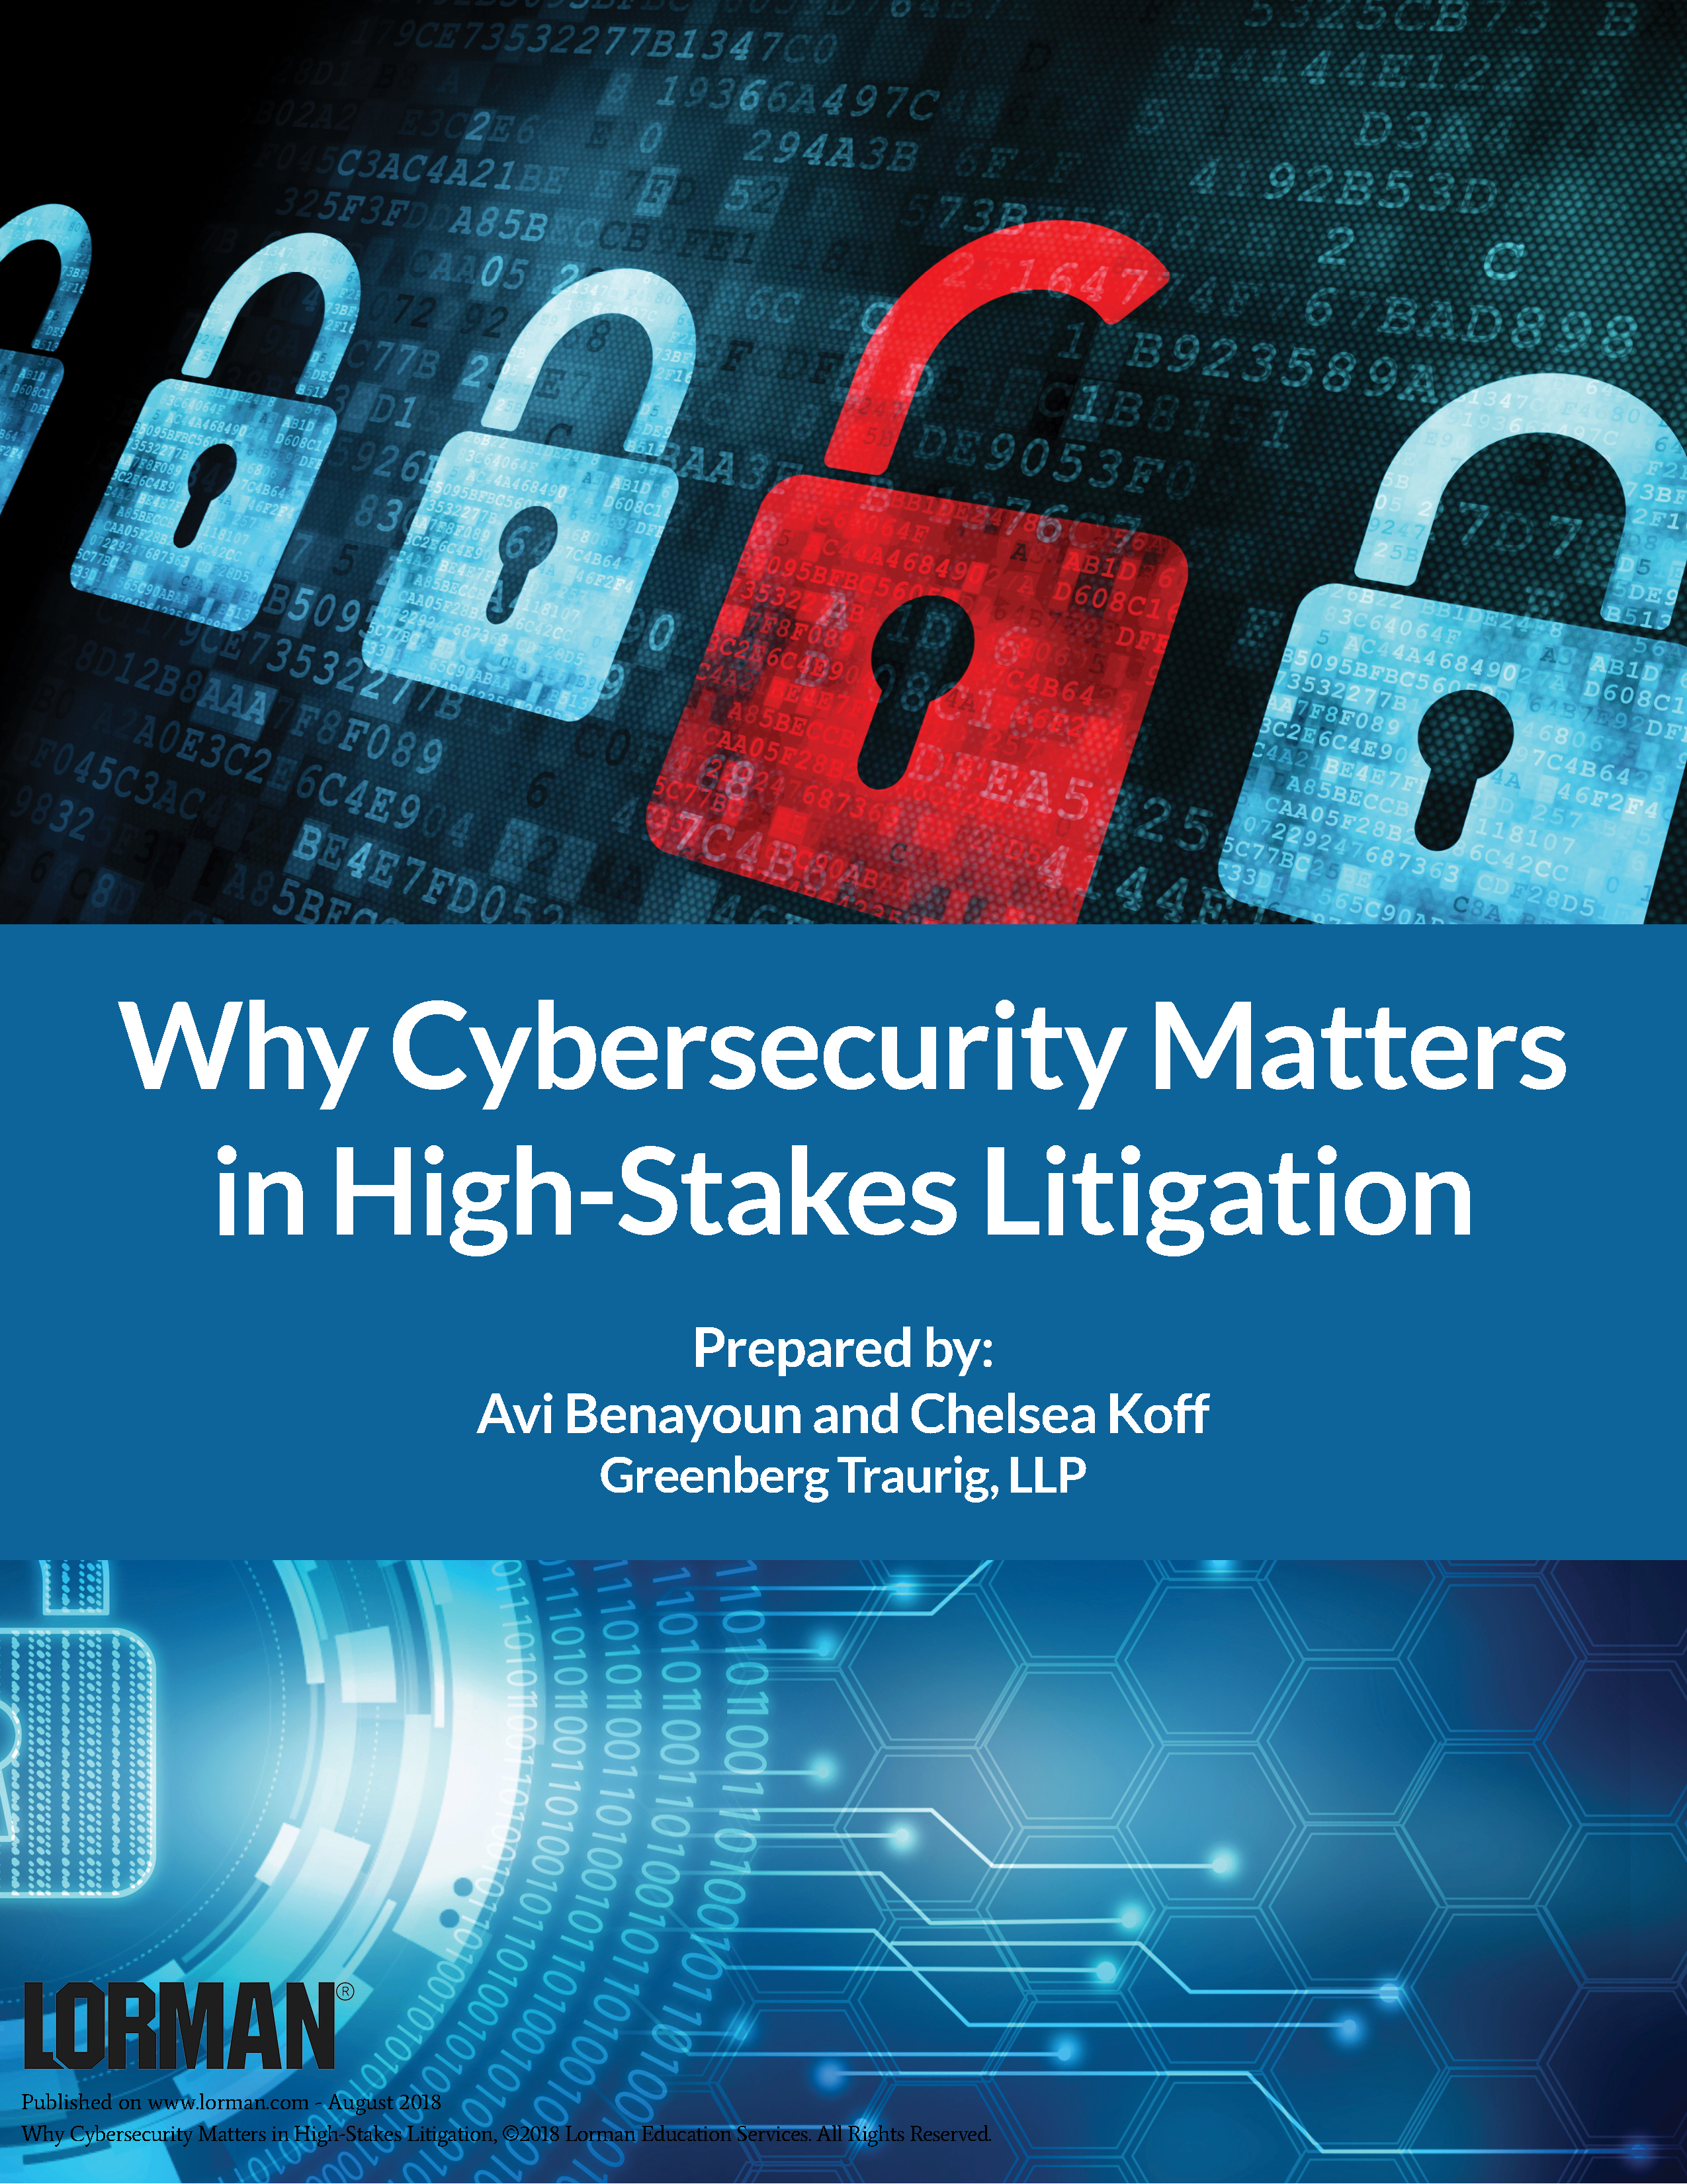 Why Cybersecurity Matters in High-Stakes Litigation